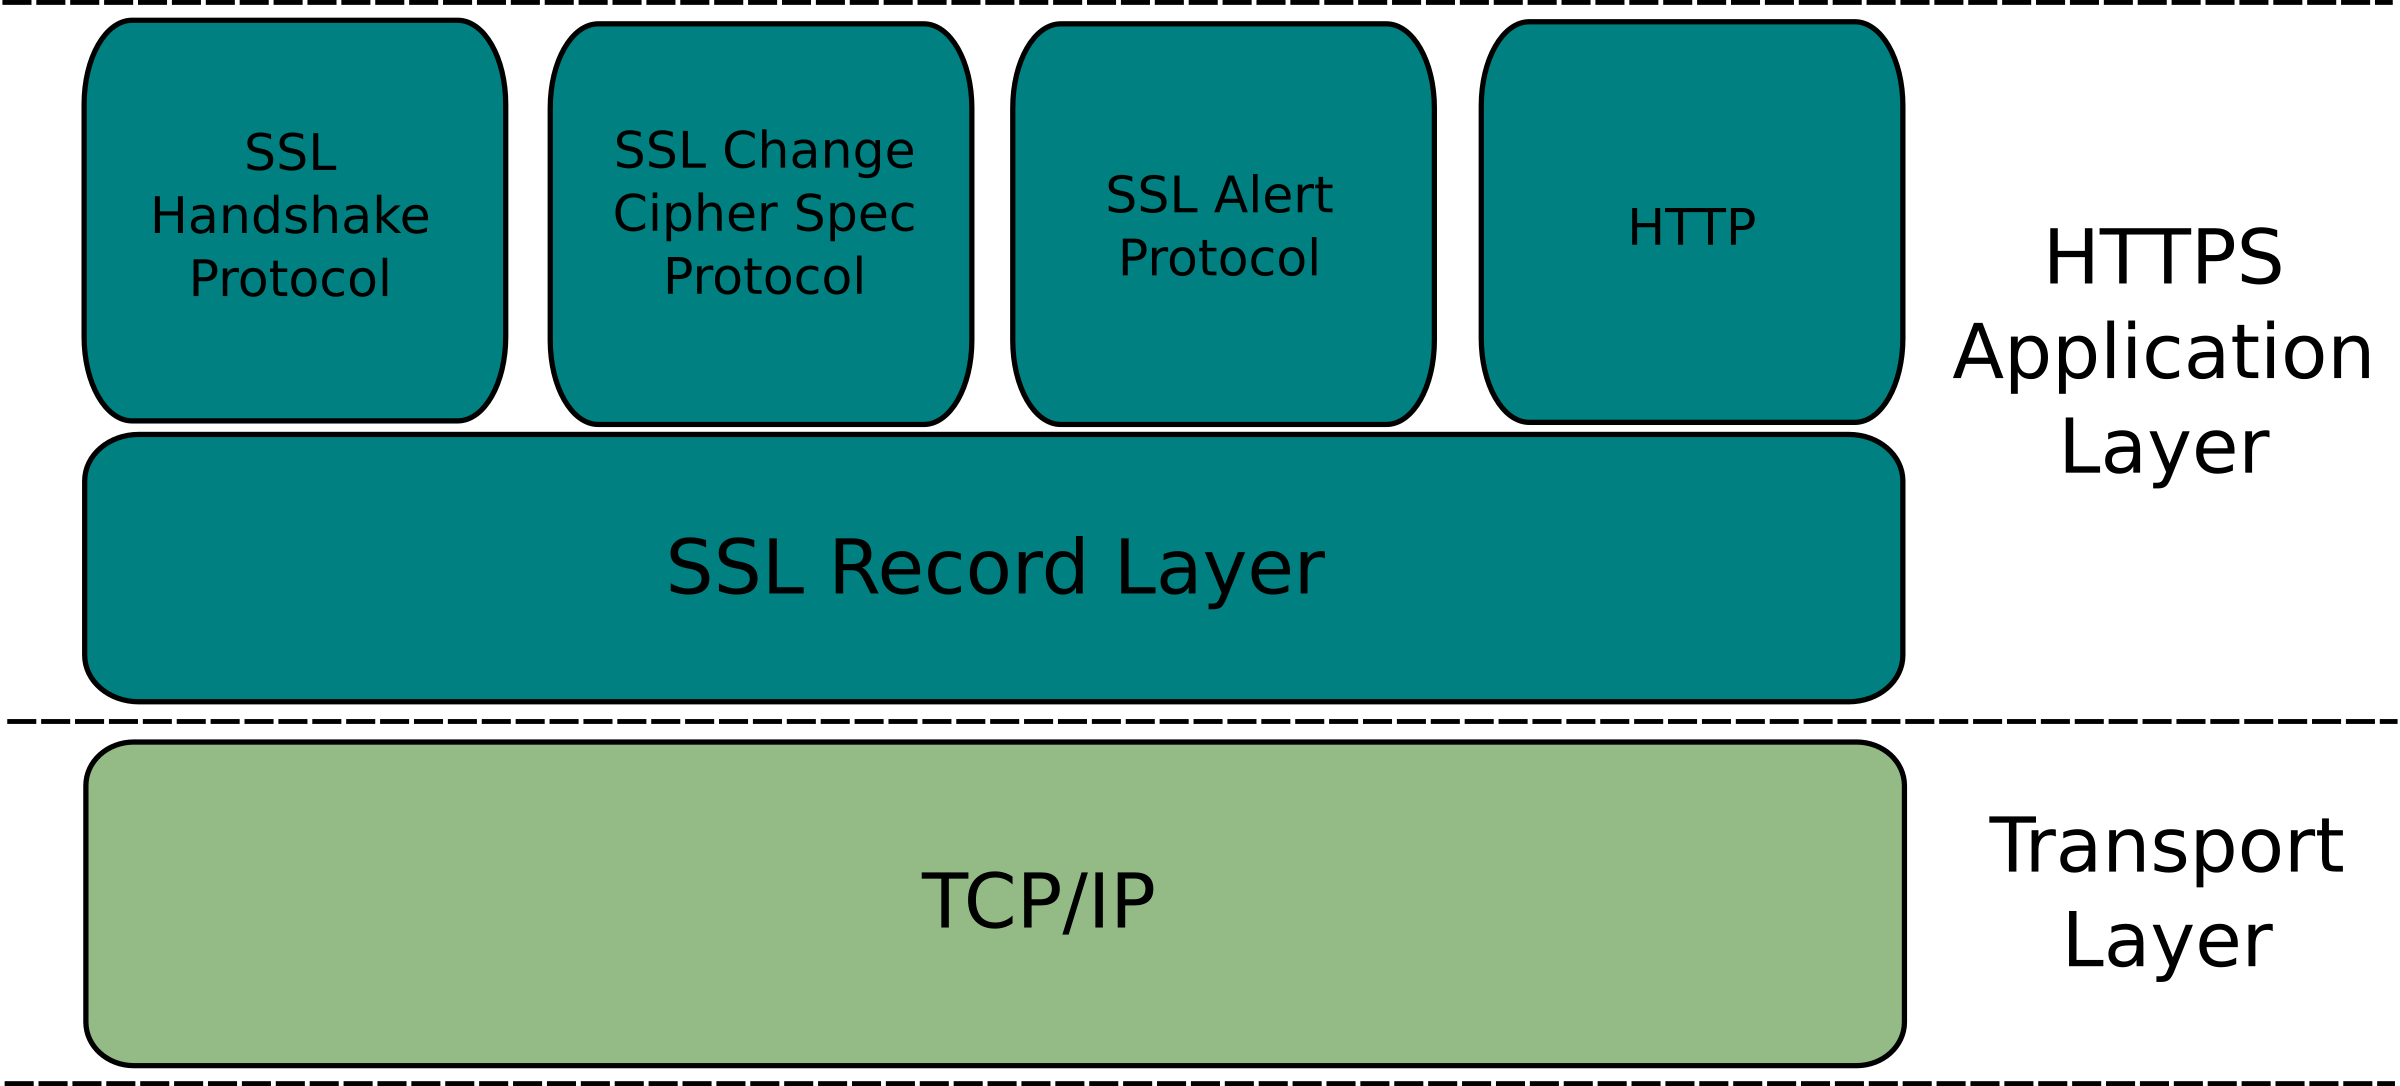 HTTPS Application Layer by 1in9ui5t